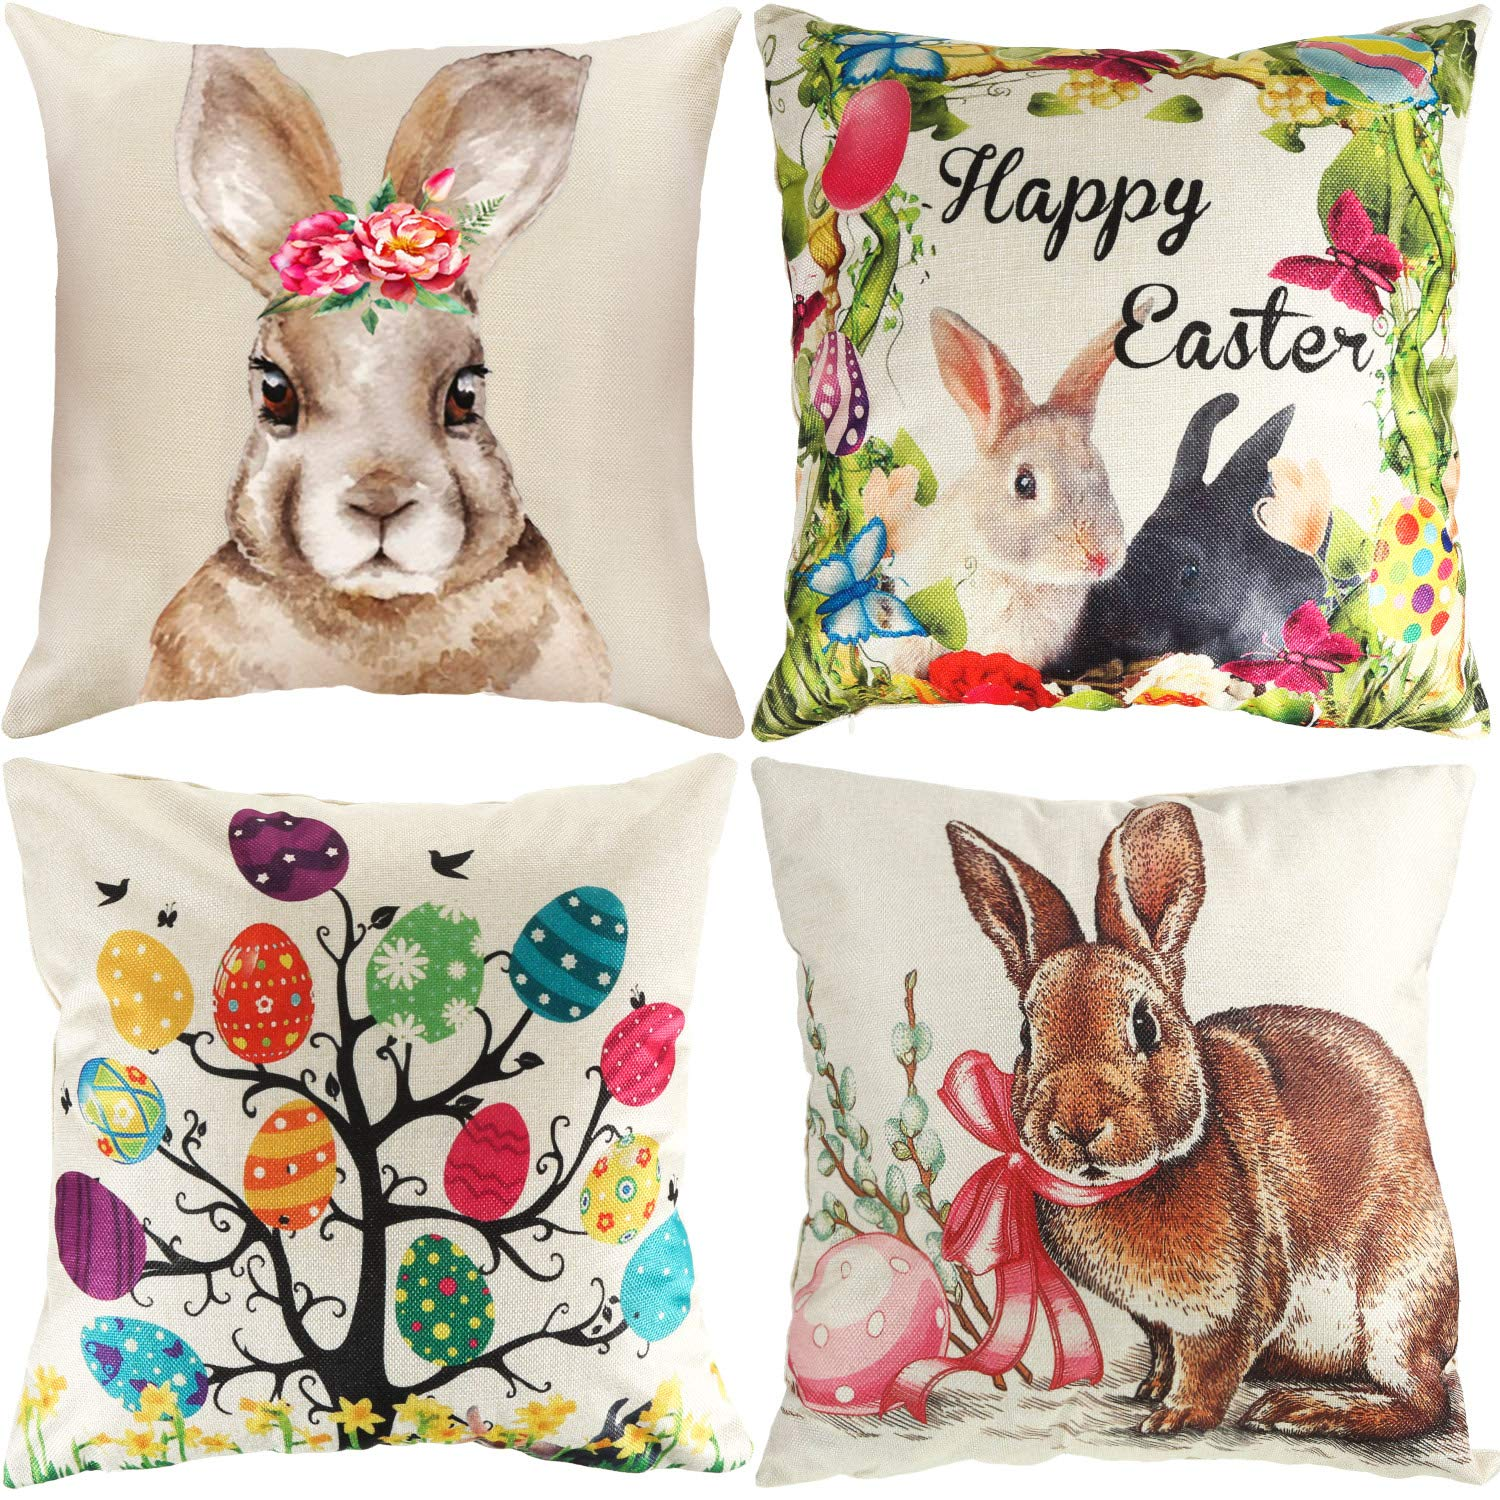 18 x 18 Inch Leinuosen 4 Pieces Easter Pillow Case with Bunny Pattern Decorative Cushion Cover with Invisible Zipper for Easter Home Office Party Favor Supplies Color Set 2